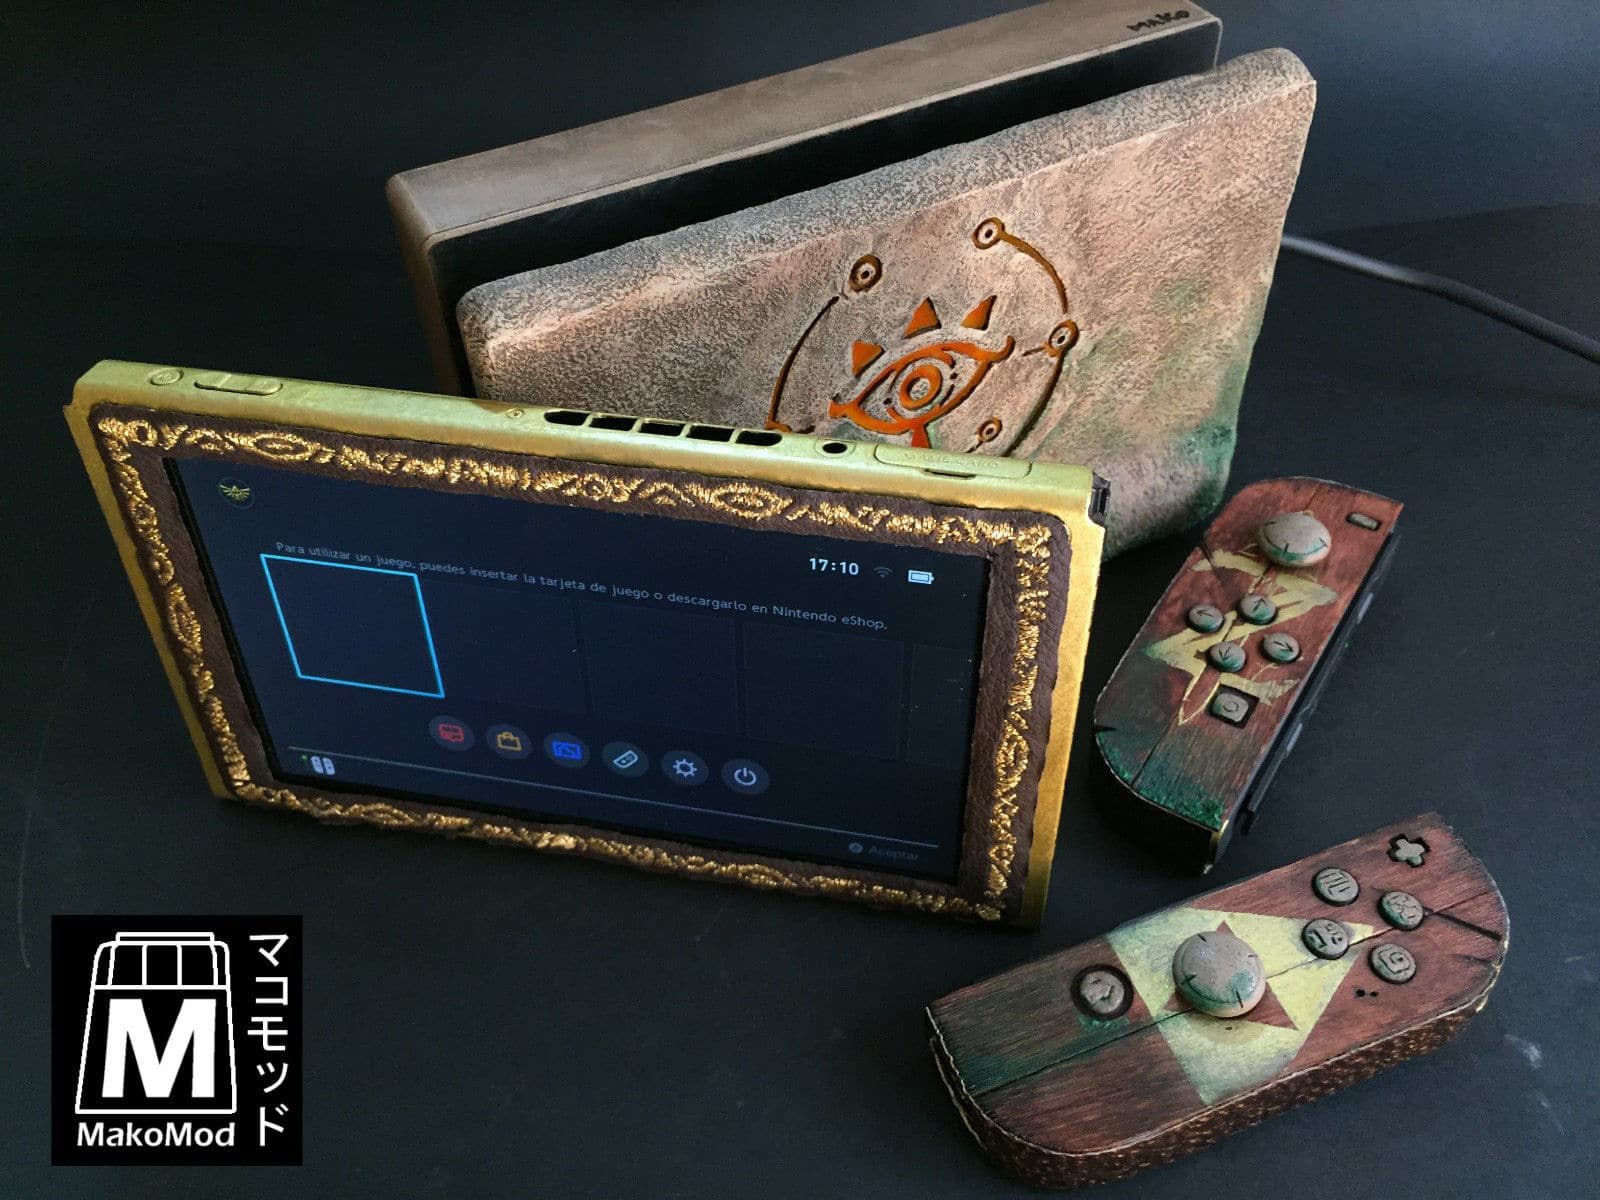 Nintendo Sheikah Switch: Außergewöhnliche Konsole in The Legend of Zelda-Optik